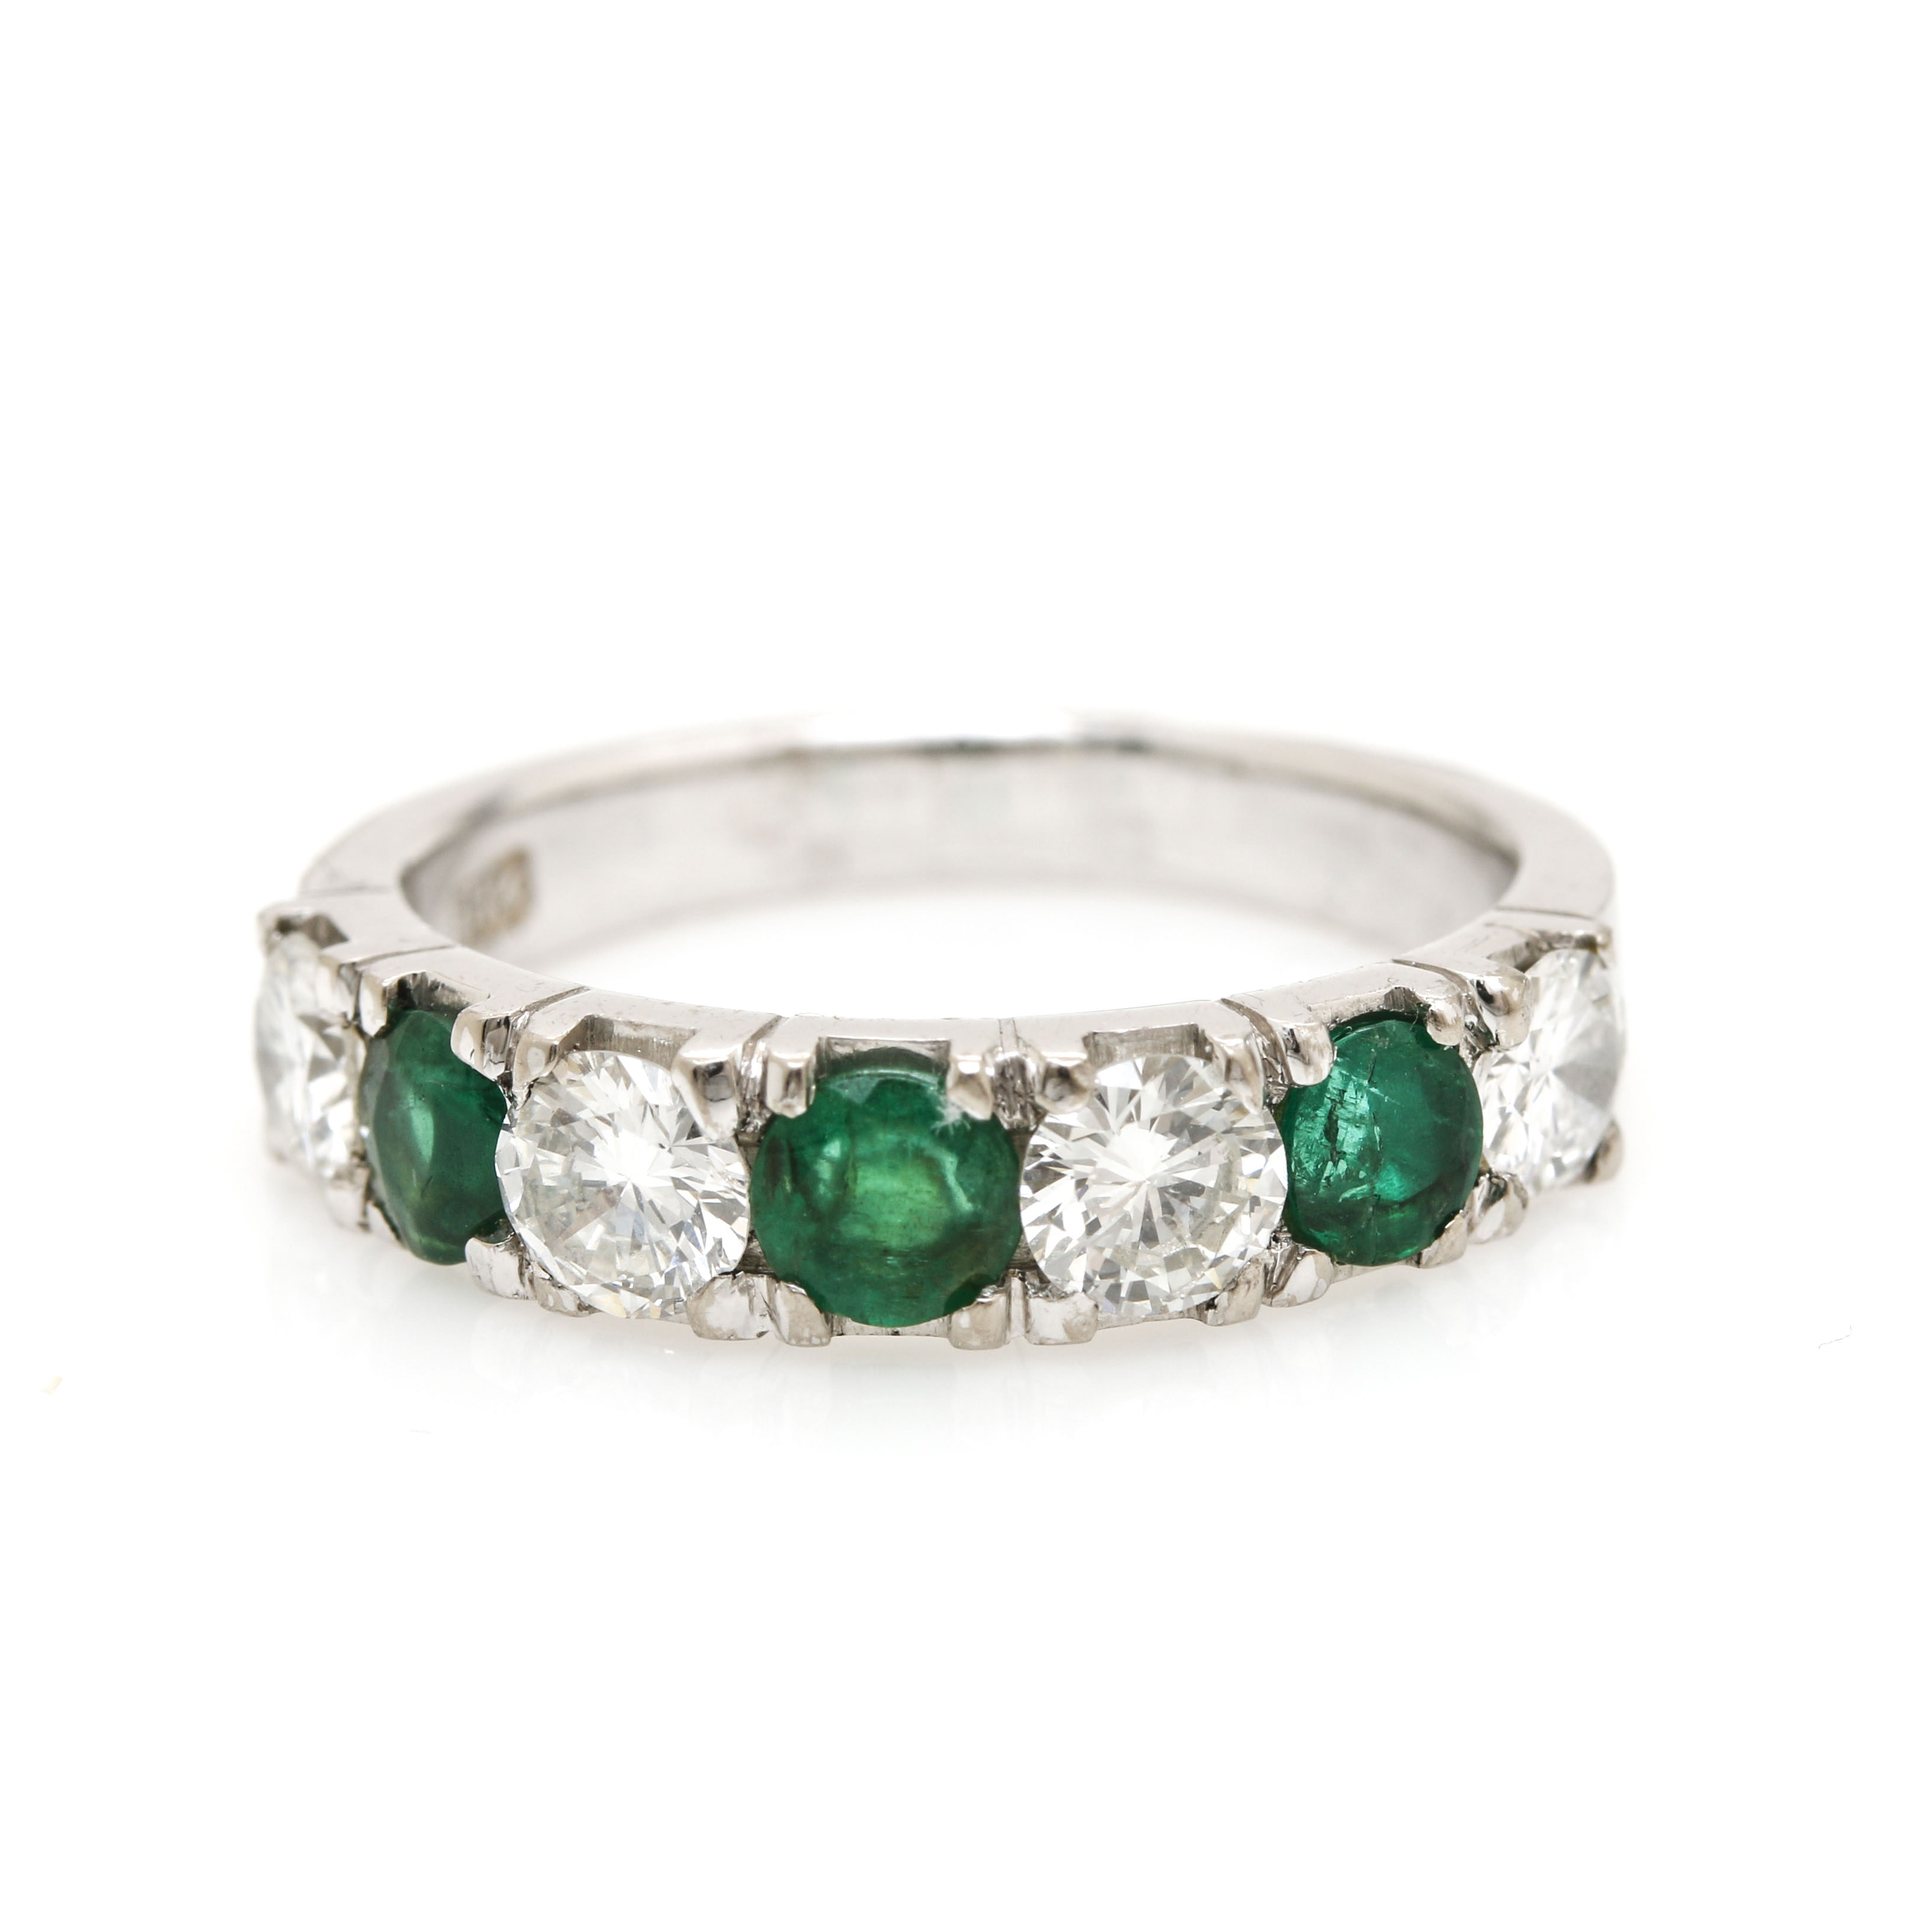 18K White Gold Diamond and Emerald Ring